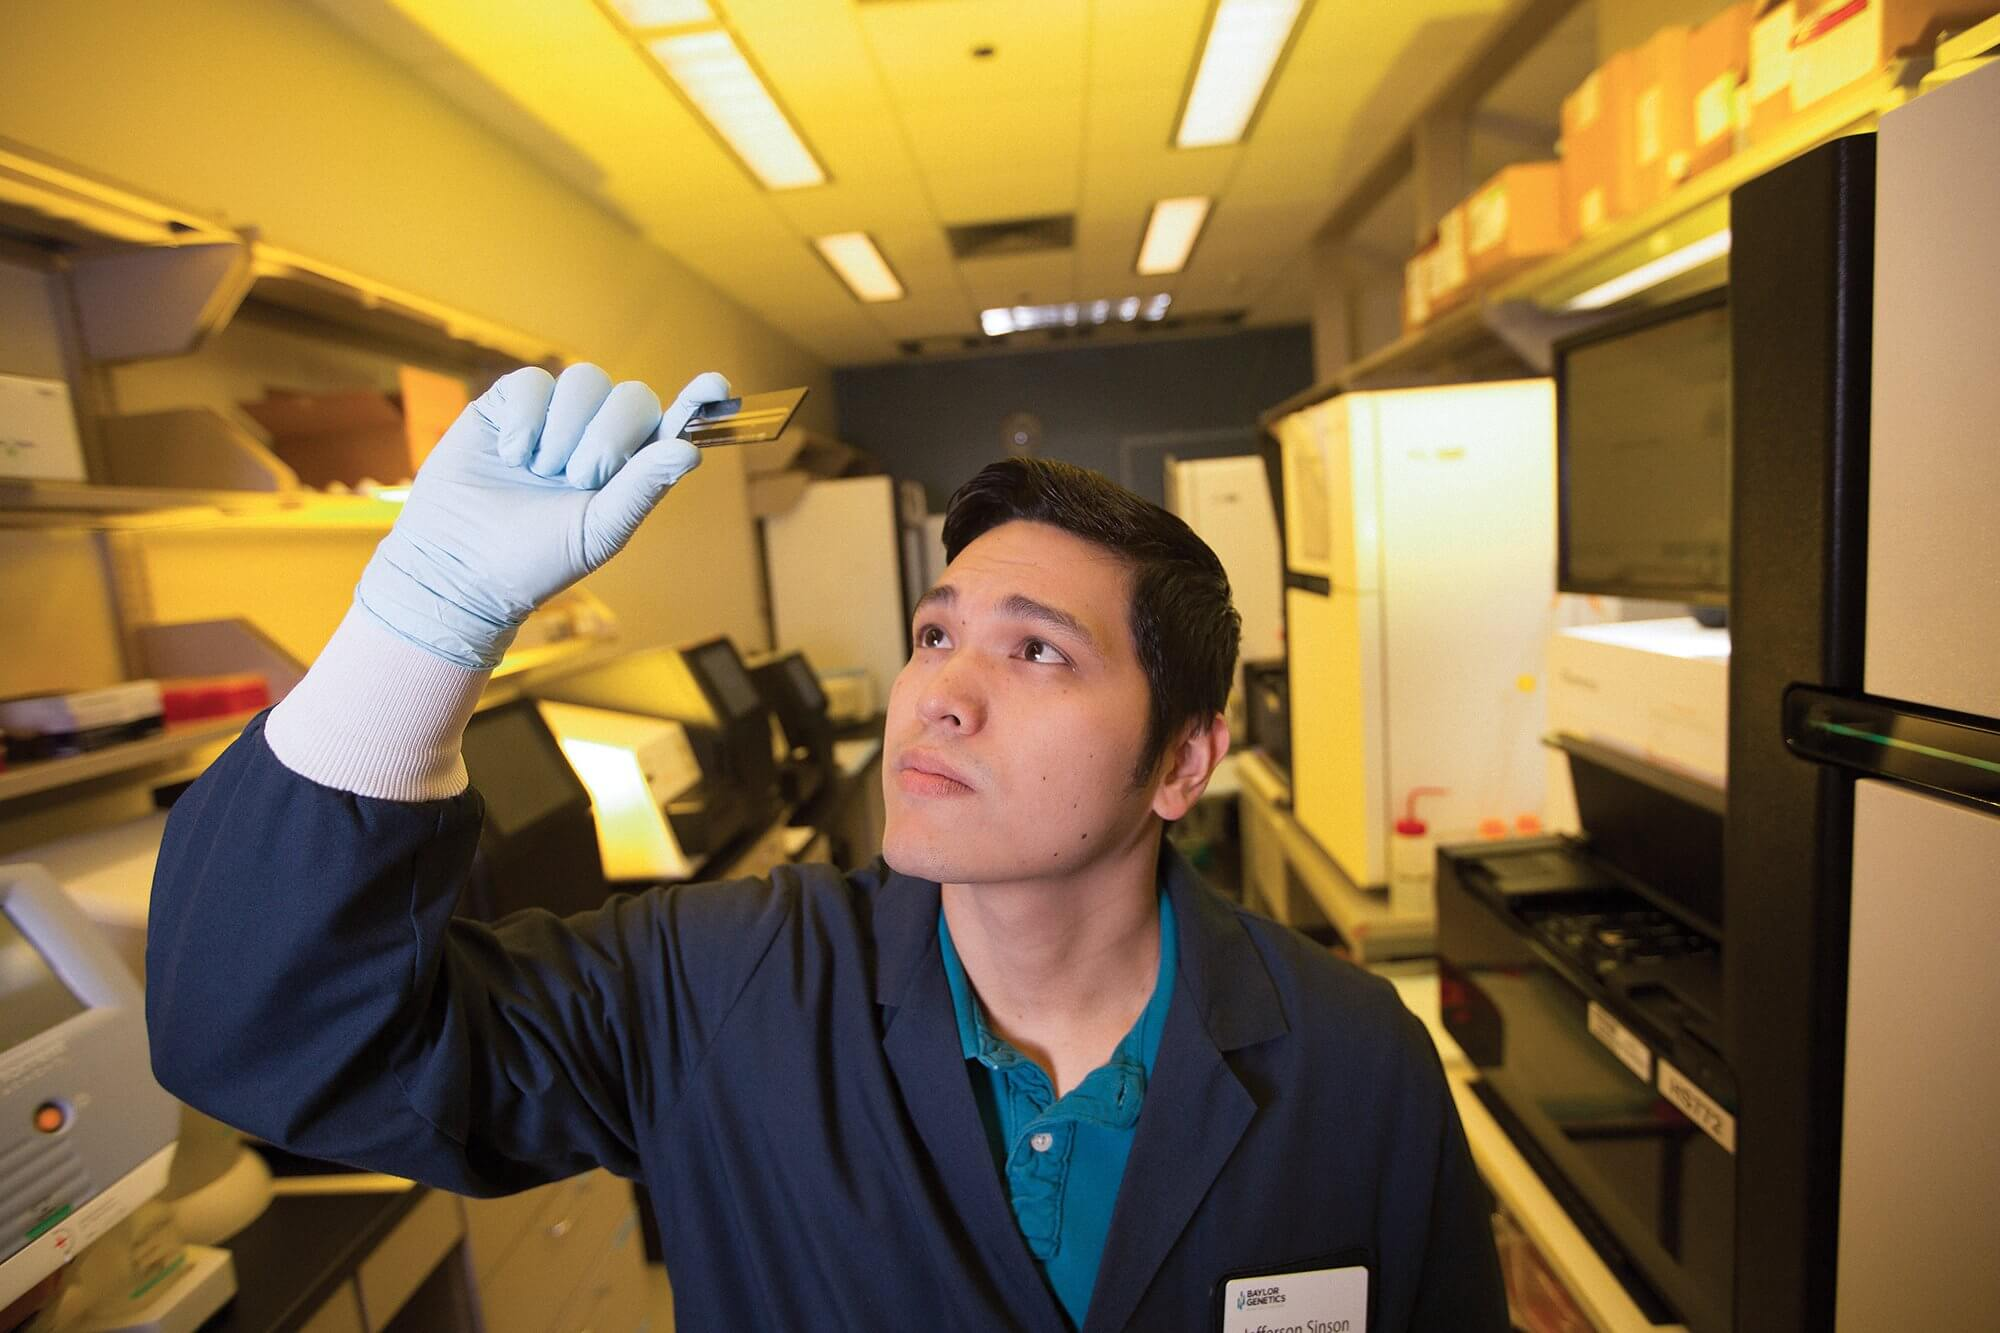 Jefferson Sinson, a research and development scientist at Baylor Genetics who worked on the development of the PreSeek test, holds up a slide containing cell-free DNA.